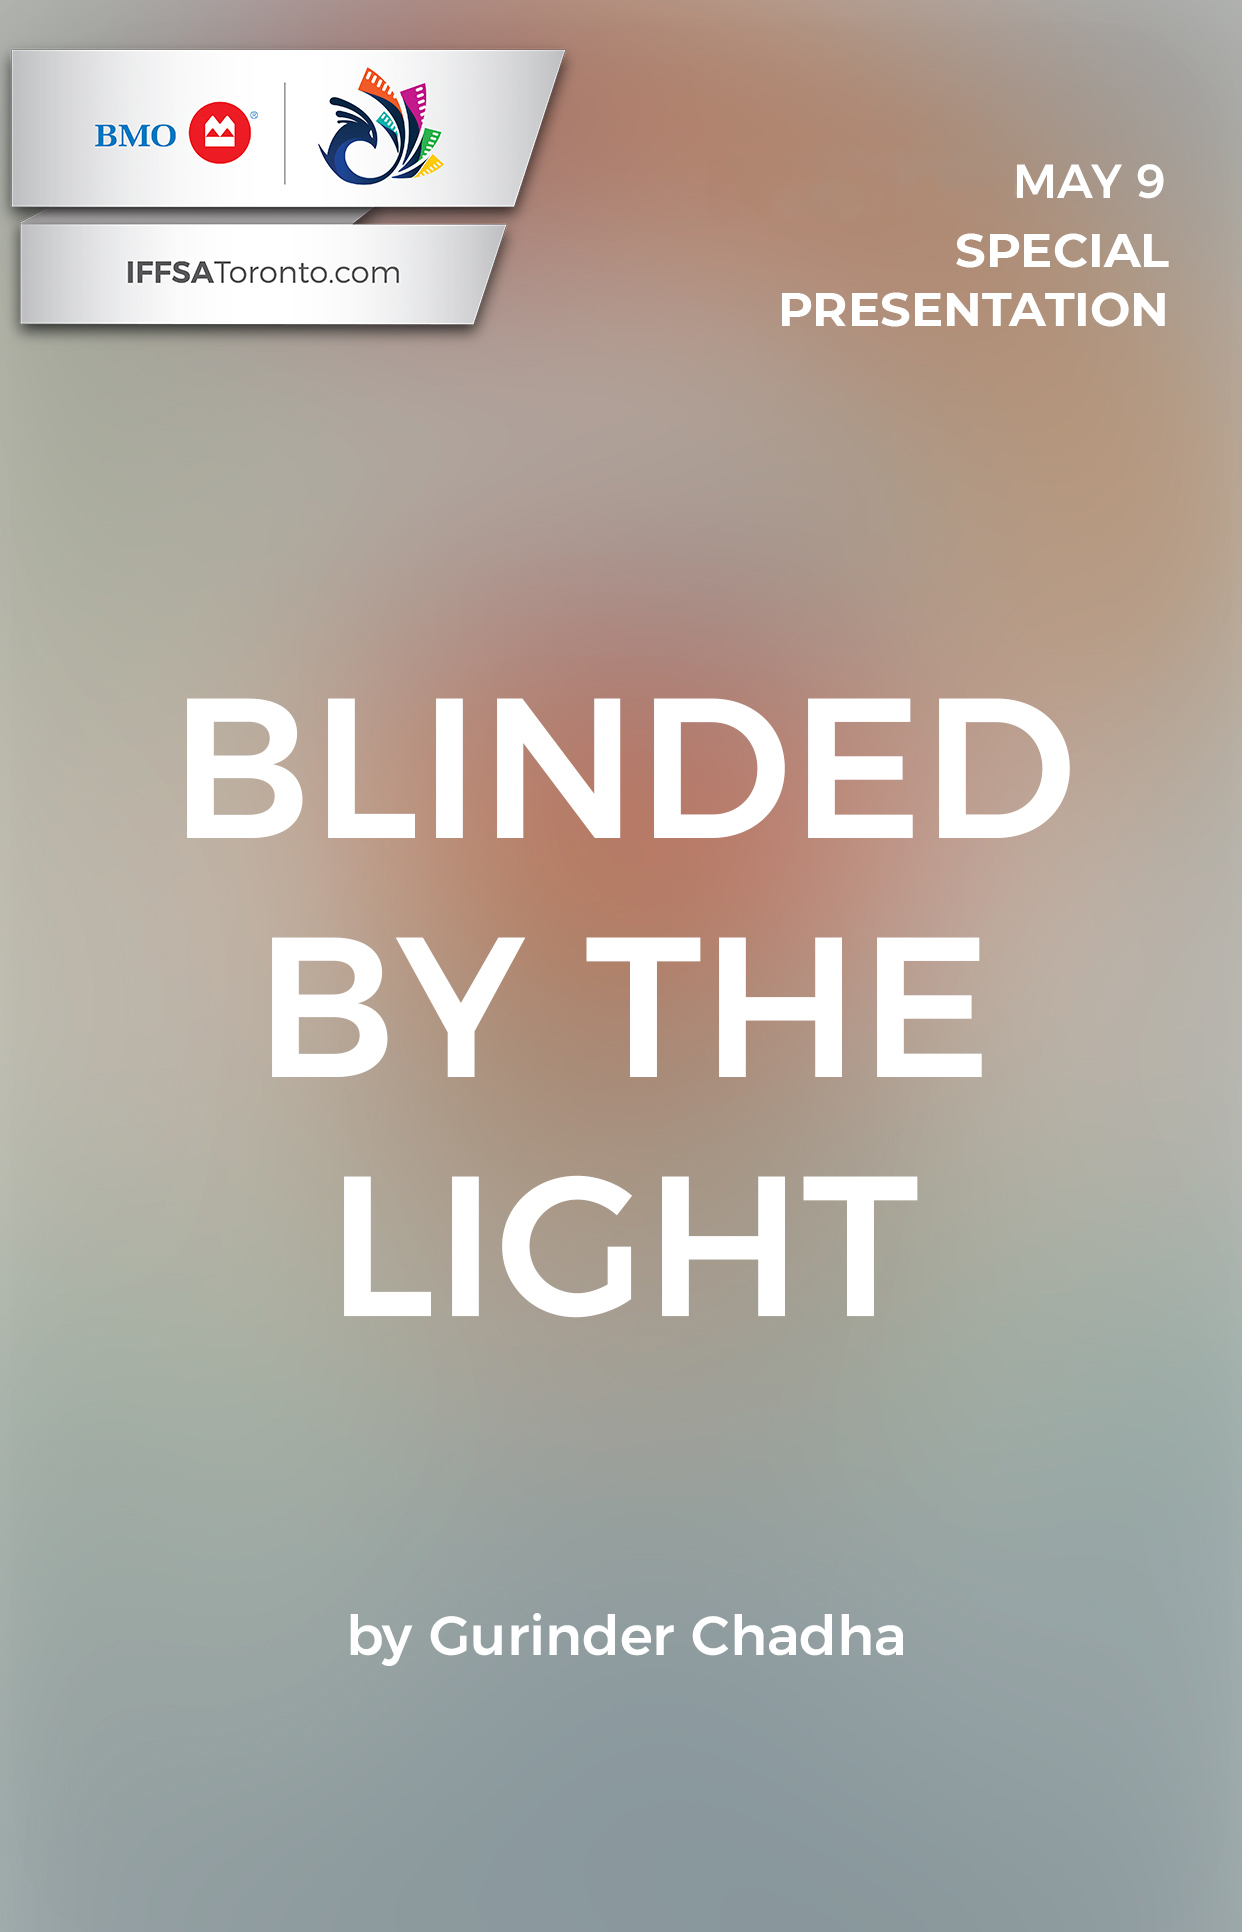 Blinded by the Light Poster Special Presentation